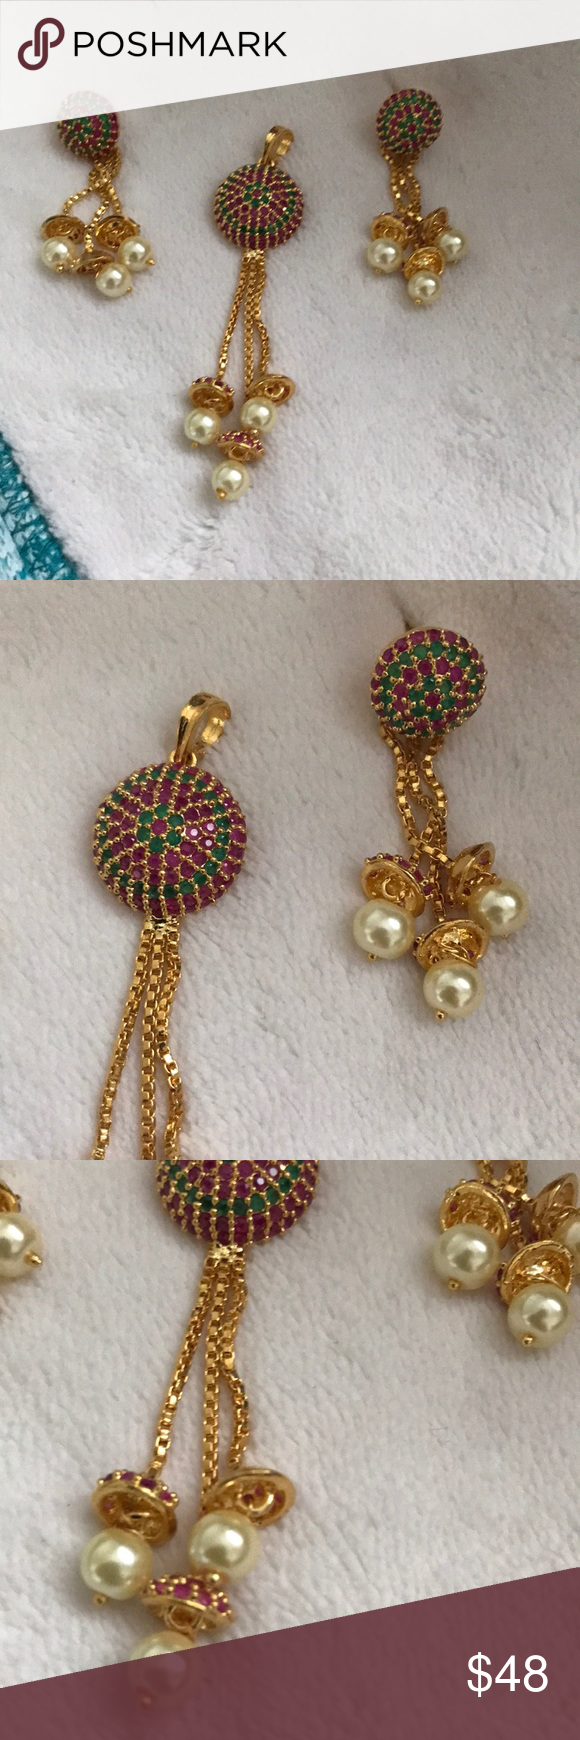 Ct gold ruby pendant and earrings set indian ct gold pendant set